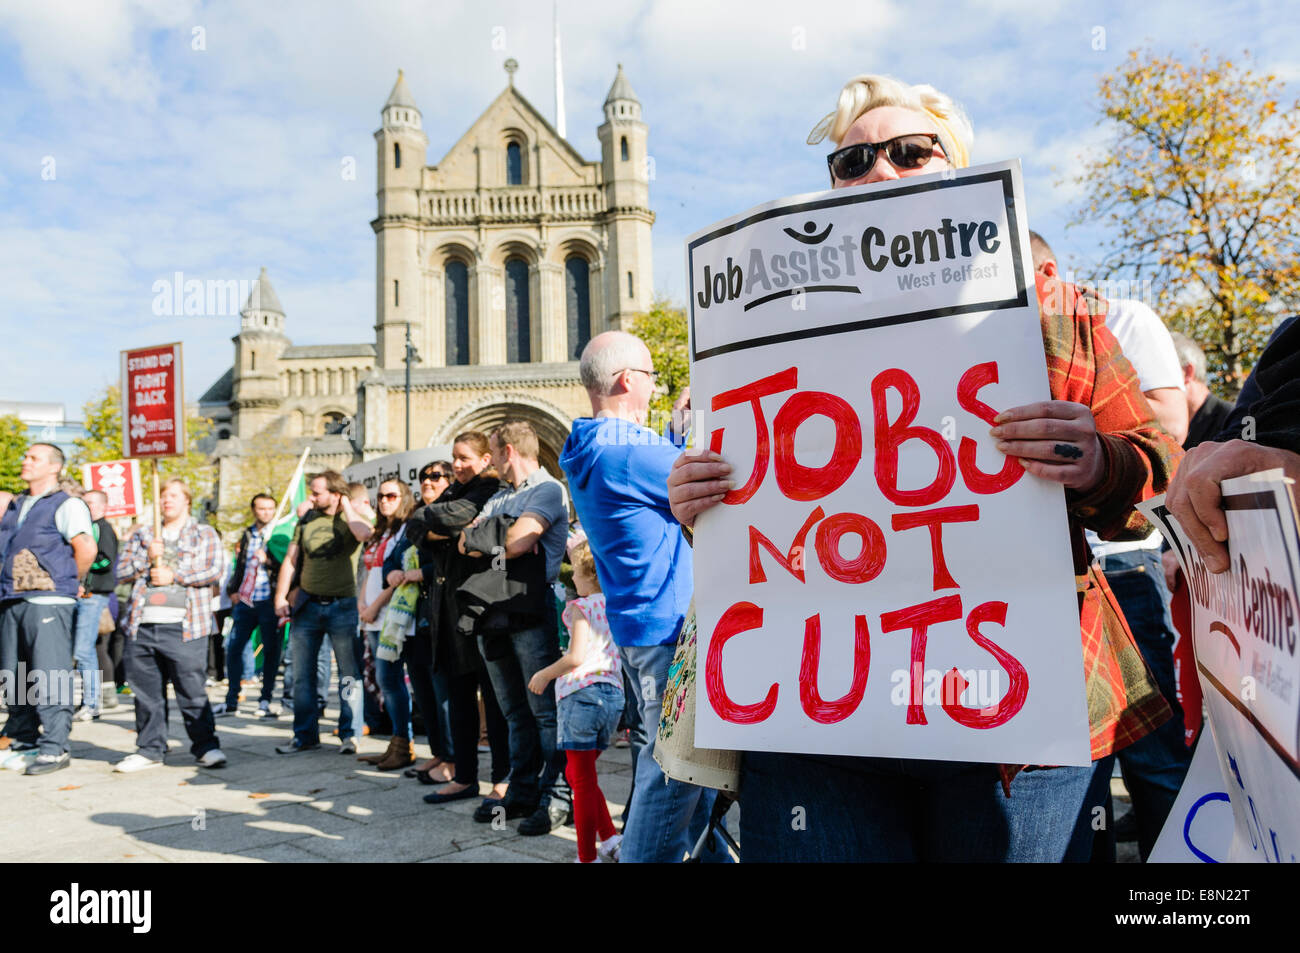 Protest against austerity cuts, Belfast, Northern Ireland Stock Photo